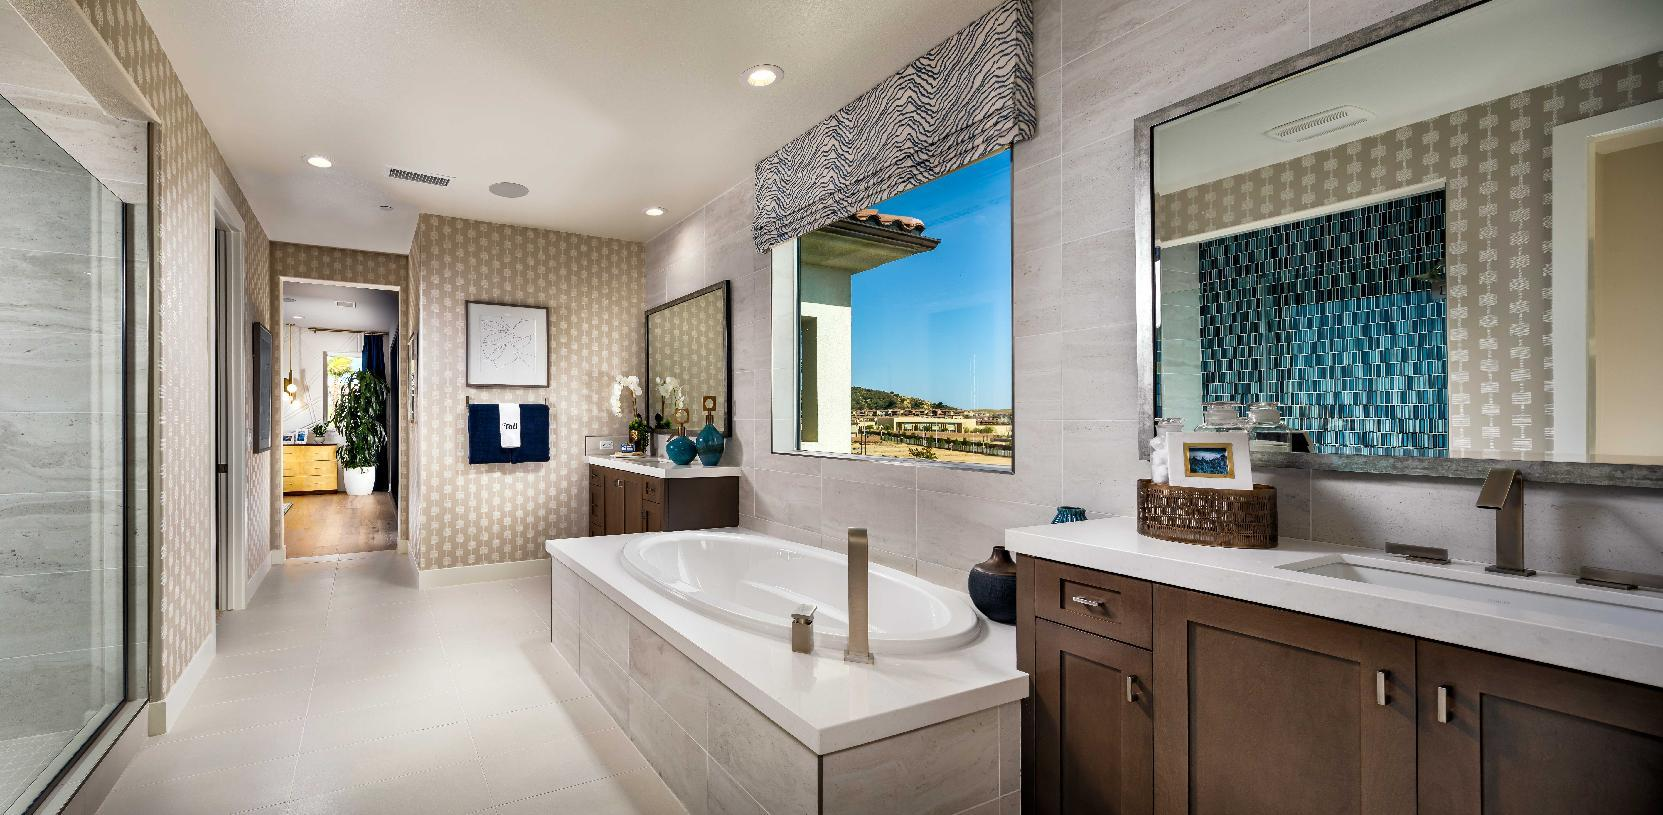 Bathroom featured in the Lassen By Toll Brothers in Los Angeles, CA